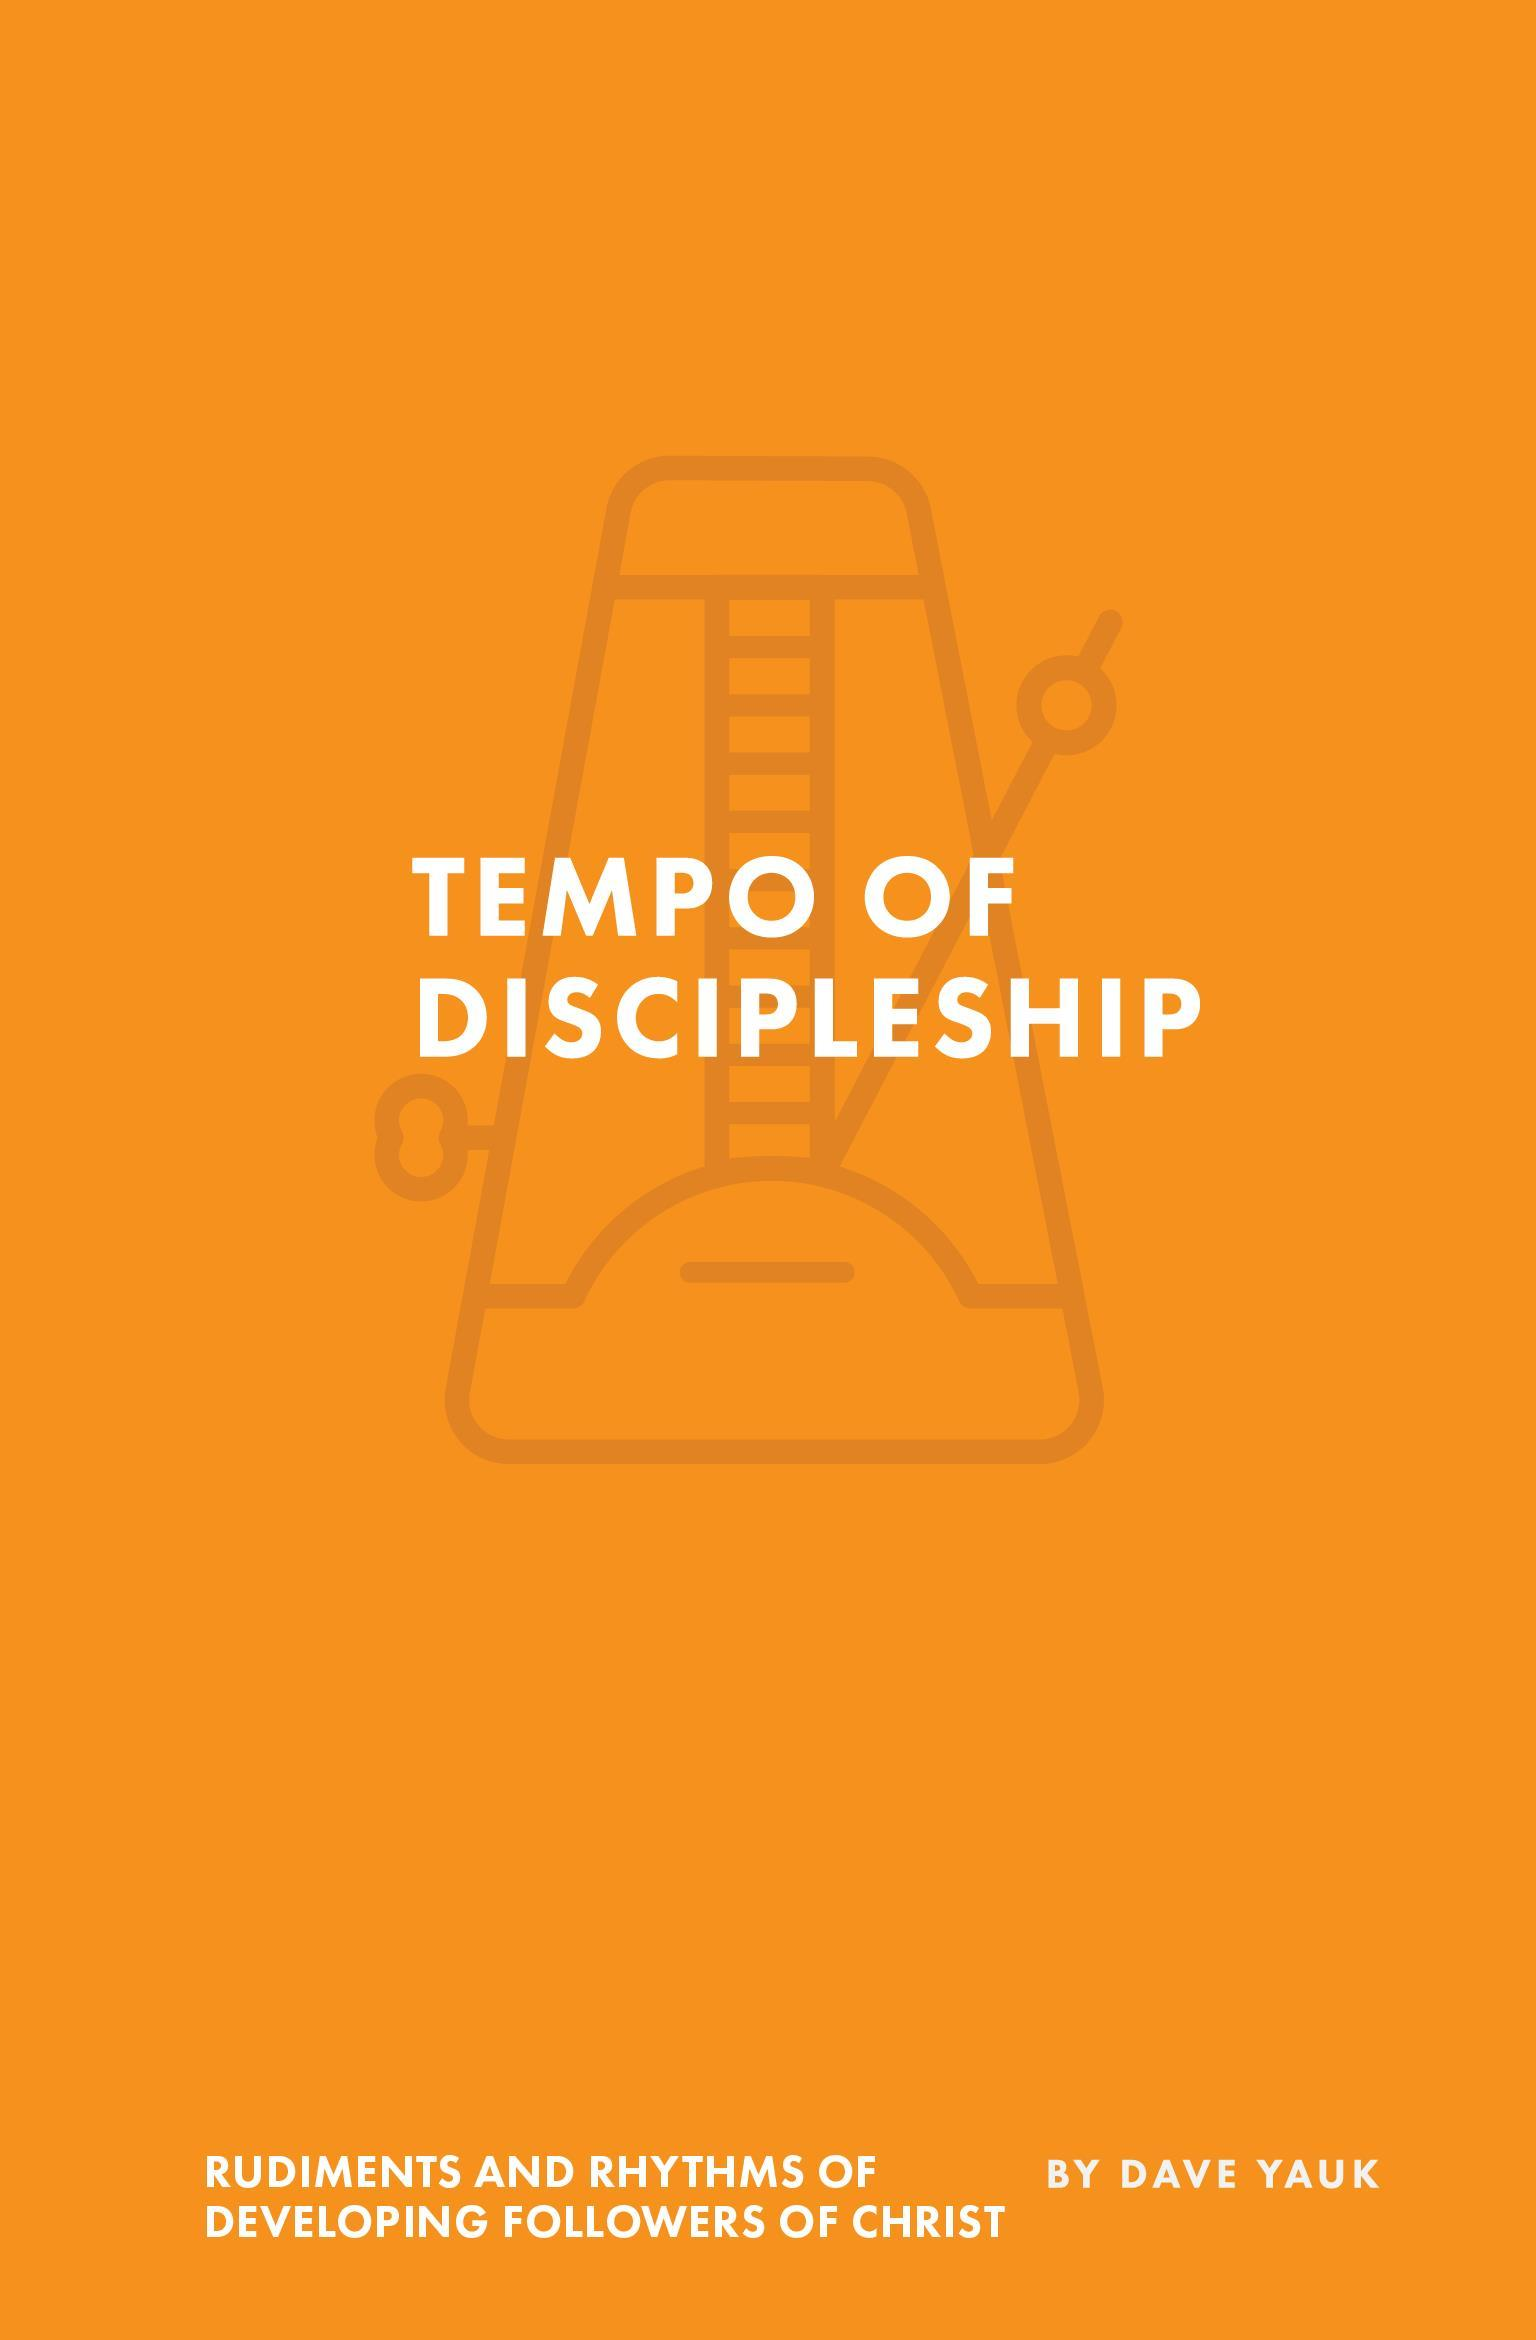 The Tempo of Discipleship: The Rudiments and Rhythms of Developing Followers of Christ